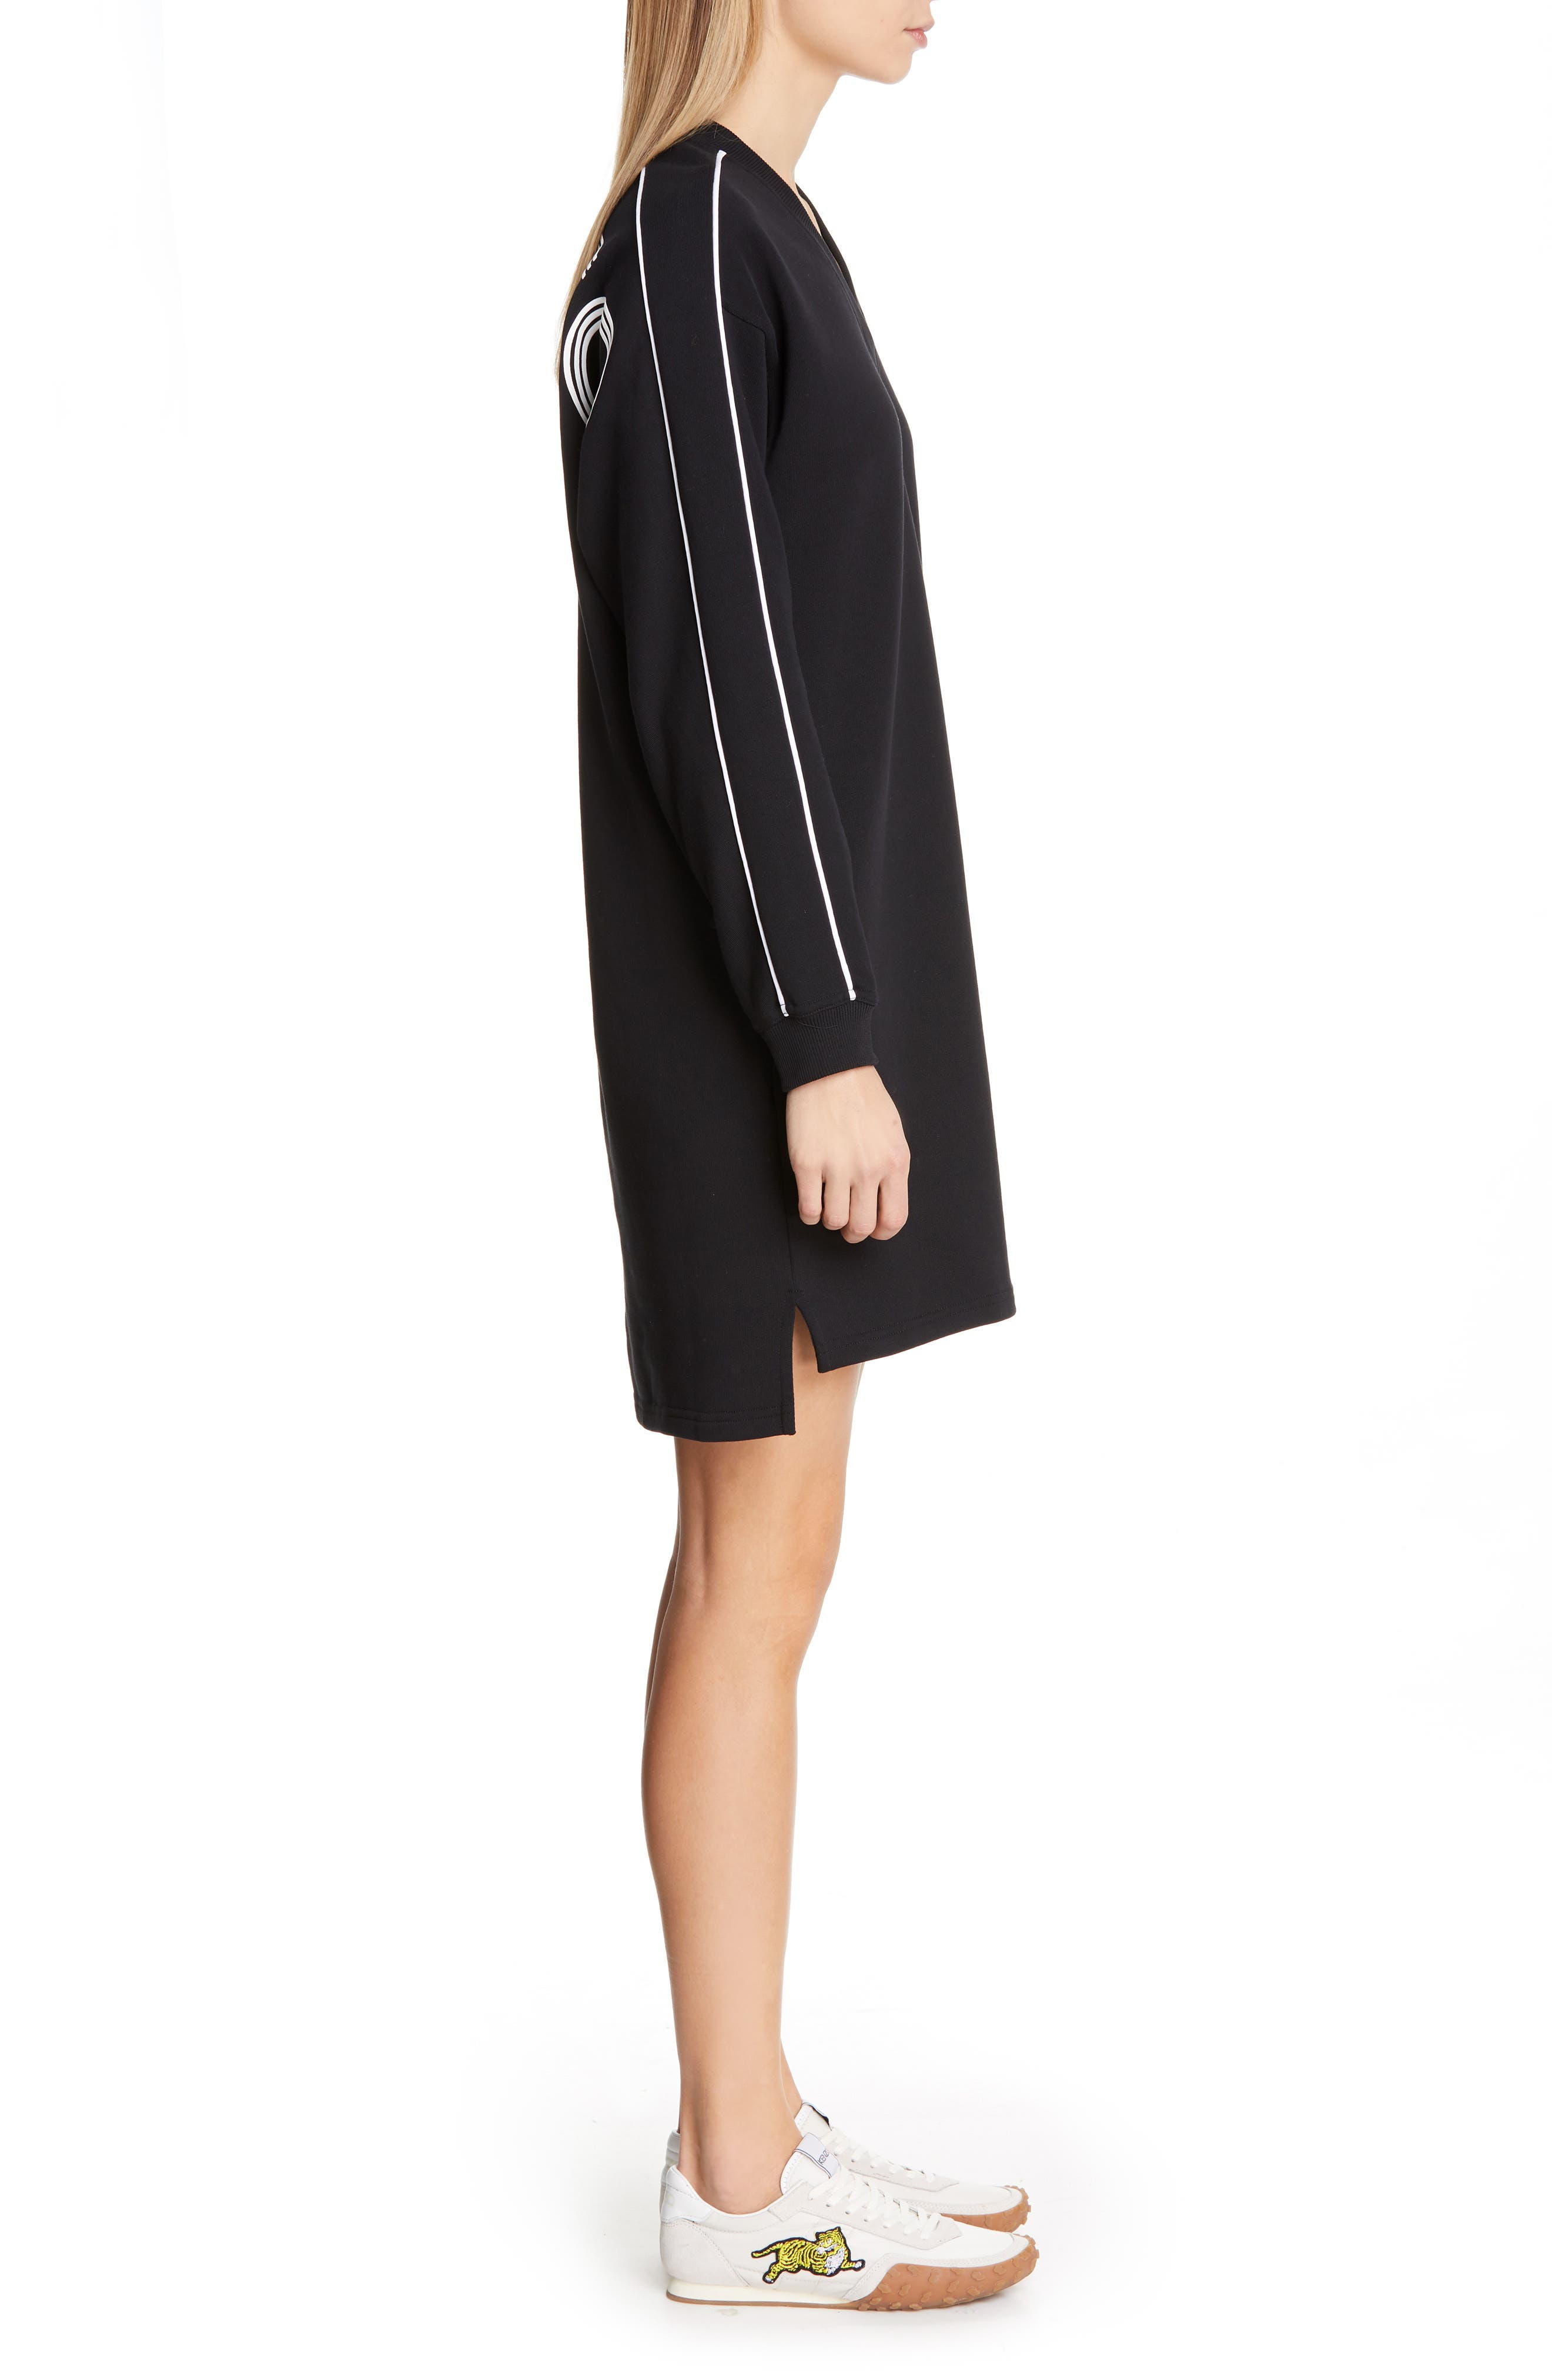 KENZO,                             Sport Sweatshirt Dress,                             Alternate thumbnail 3, color,                             BLACK